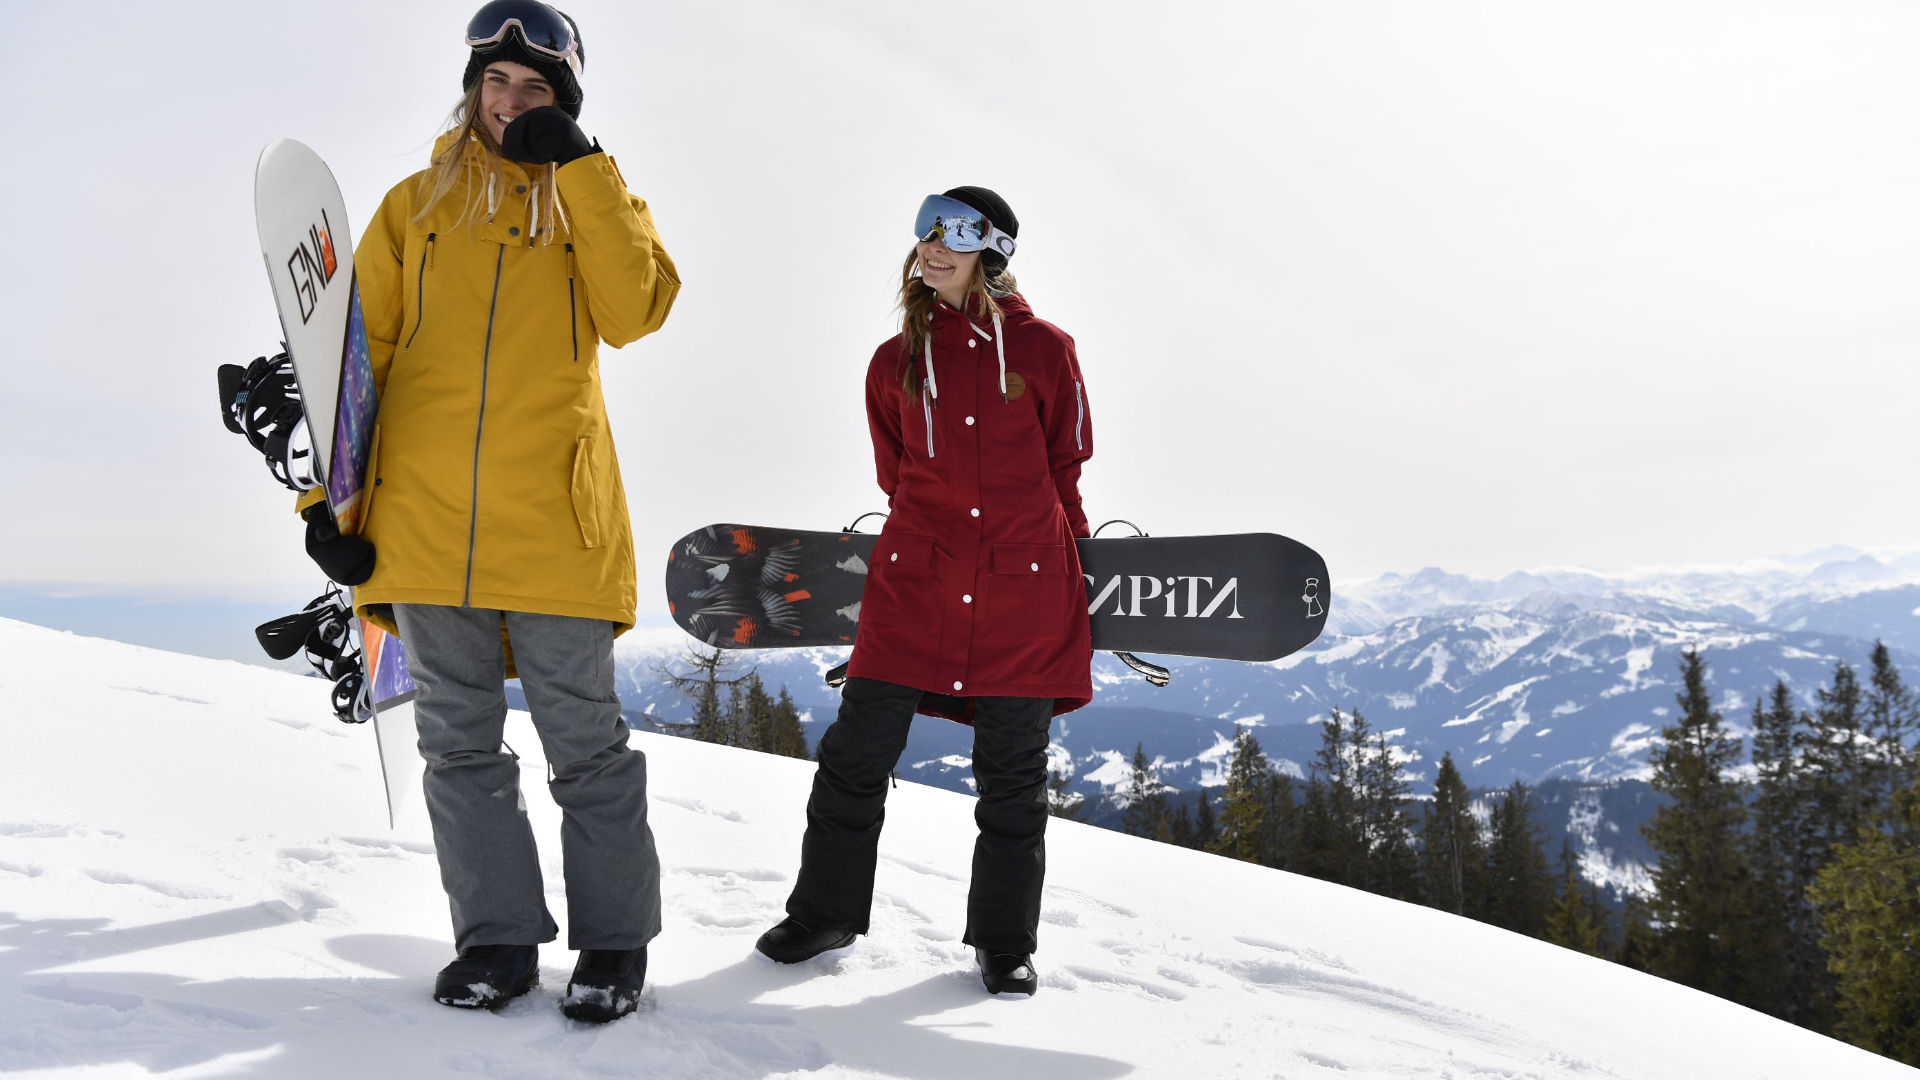 Two snowboarders chilling with longer cut jackets